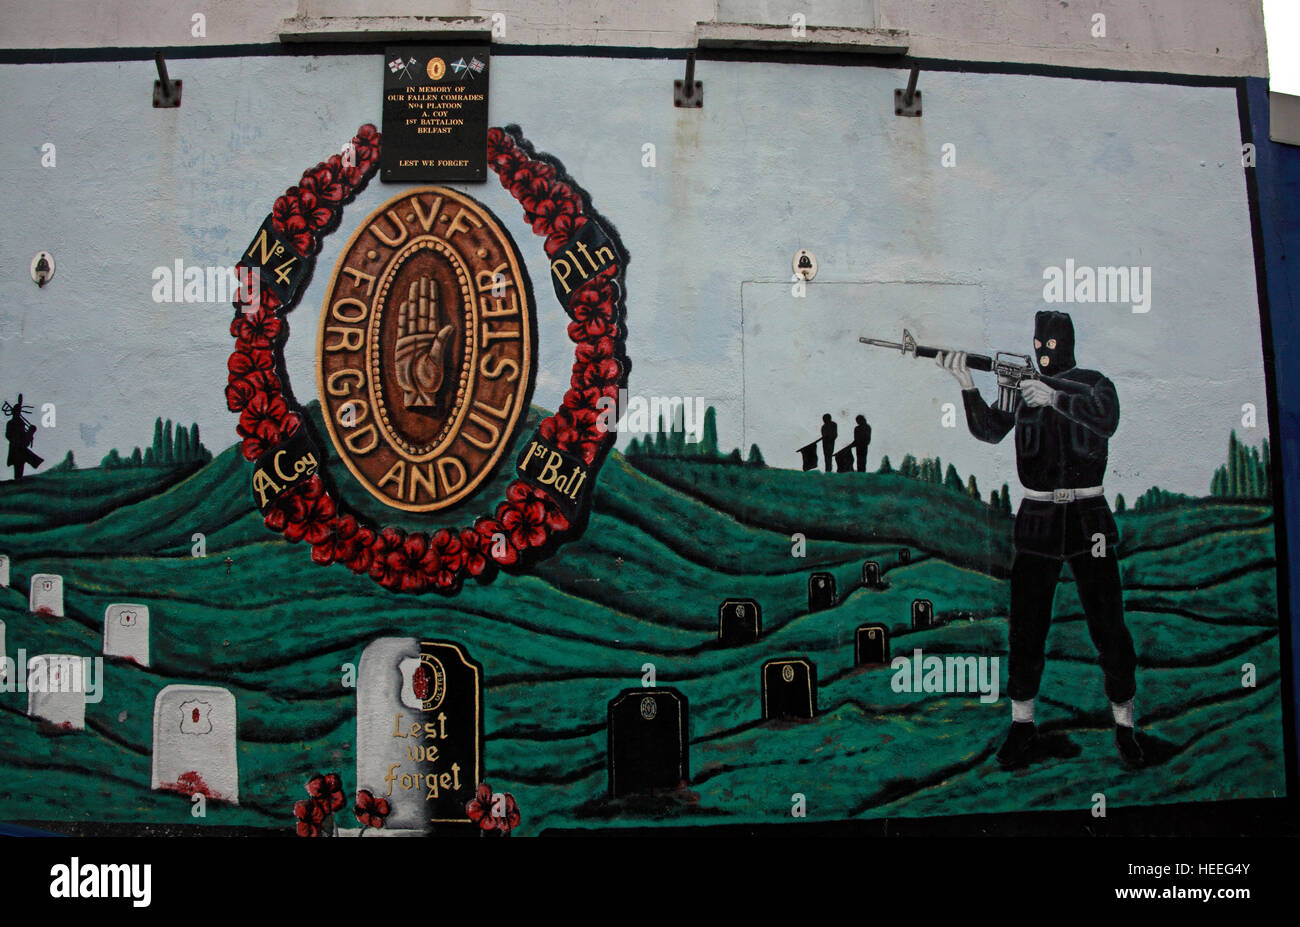 Belfast Unionist, UVF Loyalist Murals,Sniper For God and Ulster,in graveyard - Stock Image